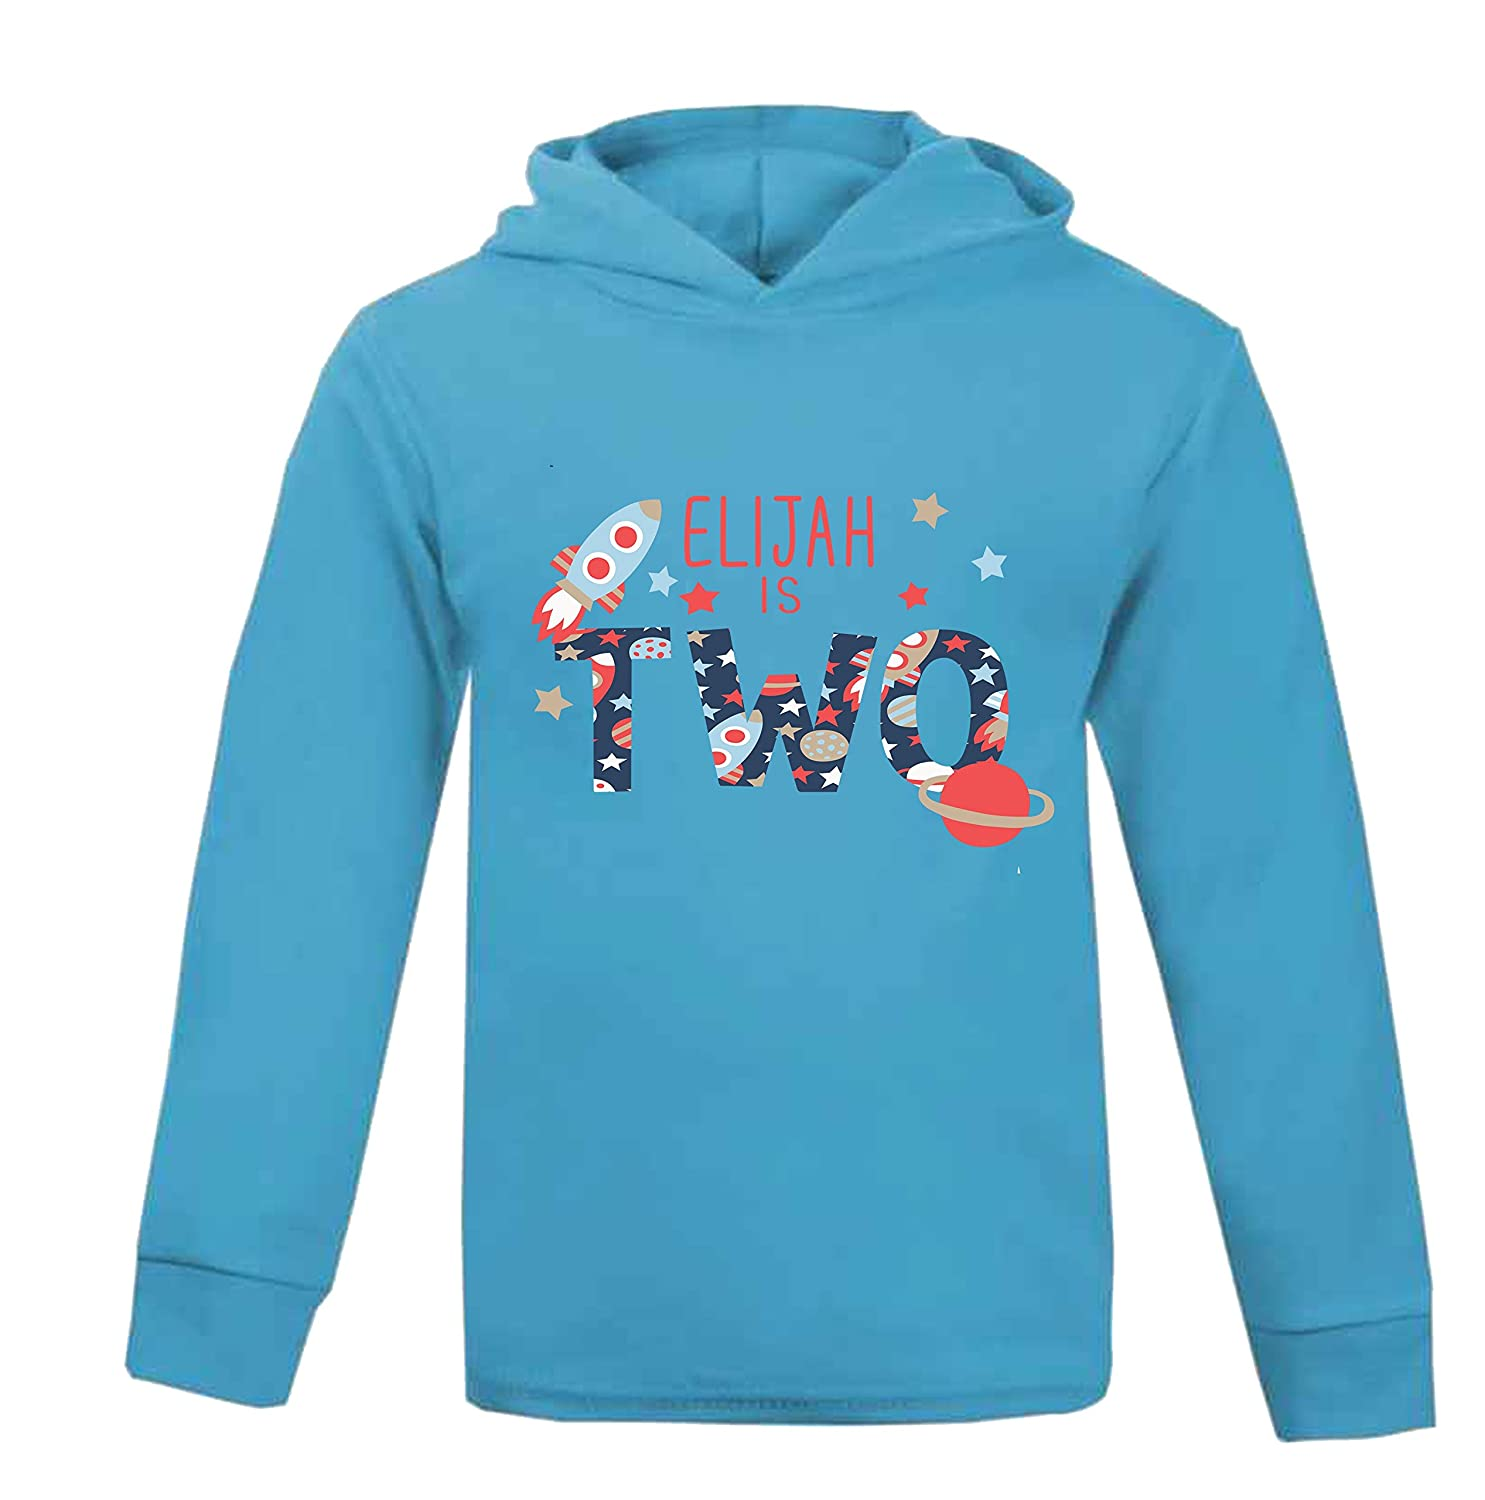 Personalised Name is 2 Birthday Space Hoodie Second Birthday Top Children's Birthday Rocket Top